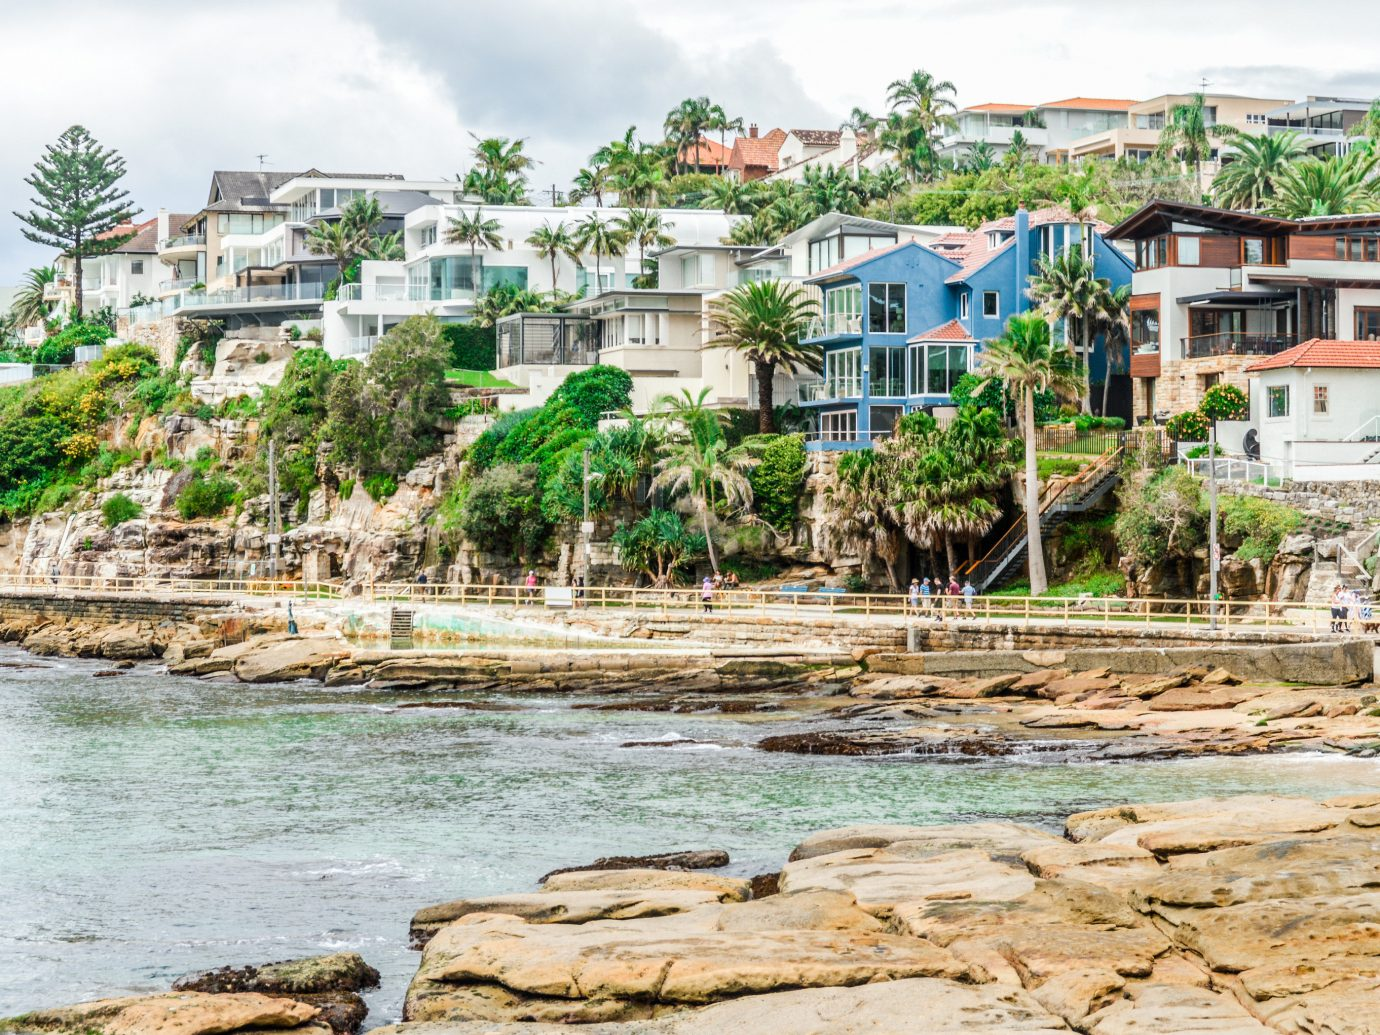 City Outdoors + Adventure Sydney outdoor building sky water body of water house Coast shore Sea tree tourism Village bay docked